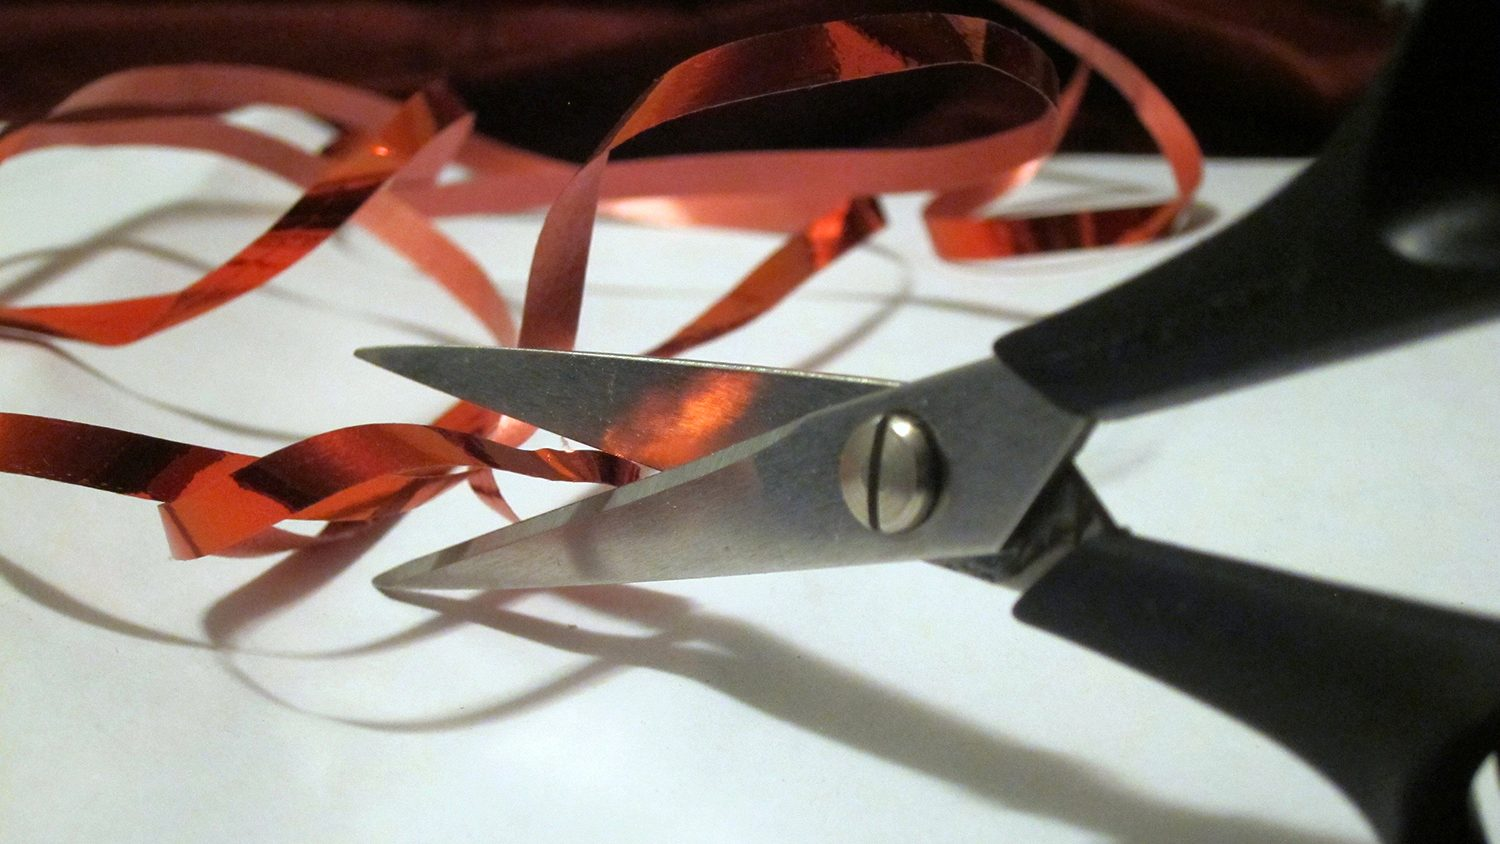 Scissors prepare to cut through a tangle of yarn